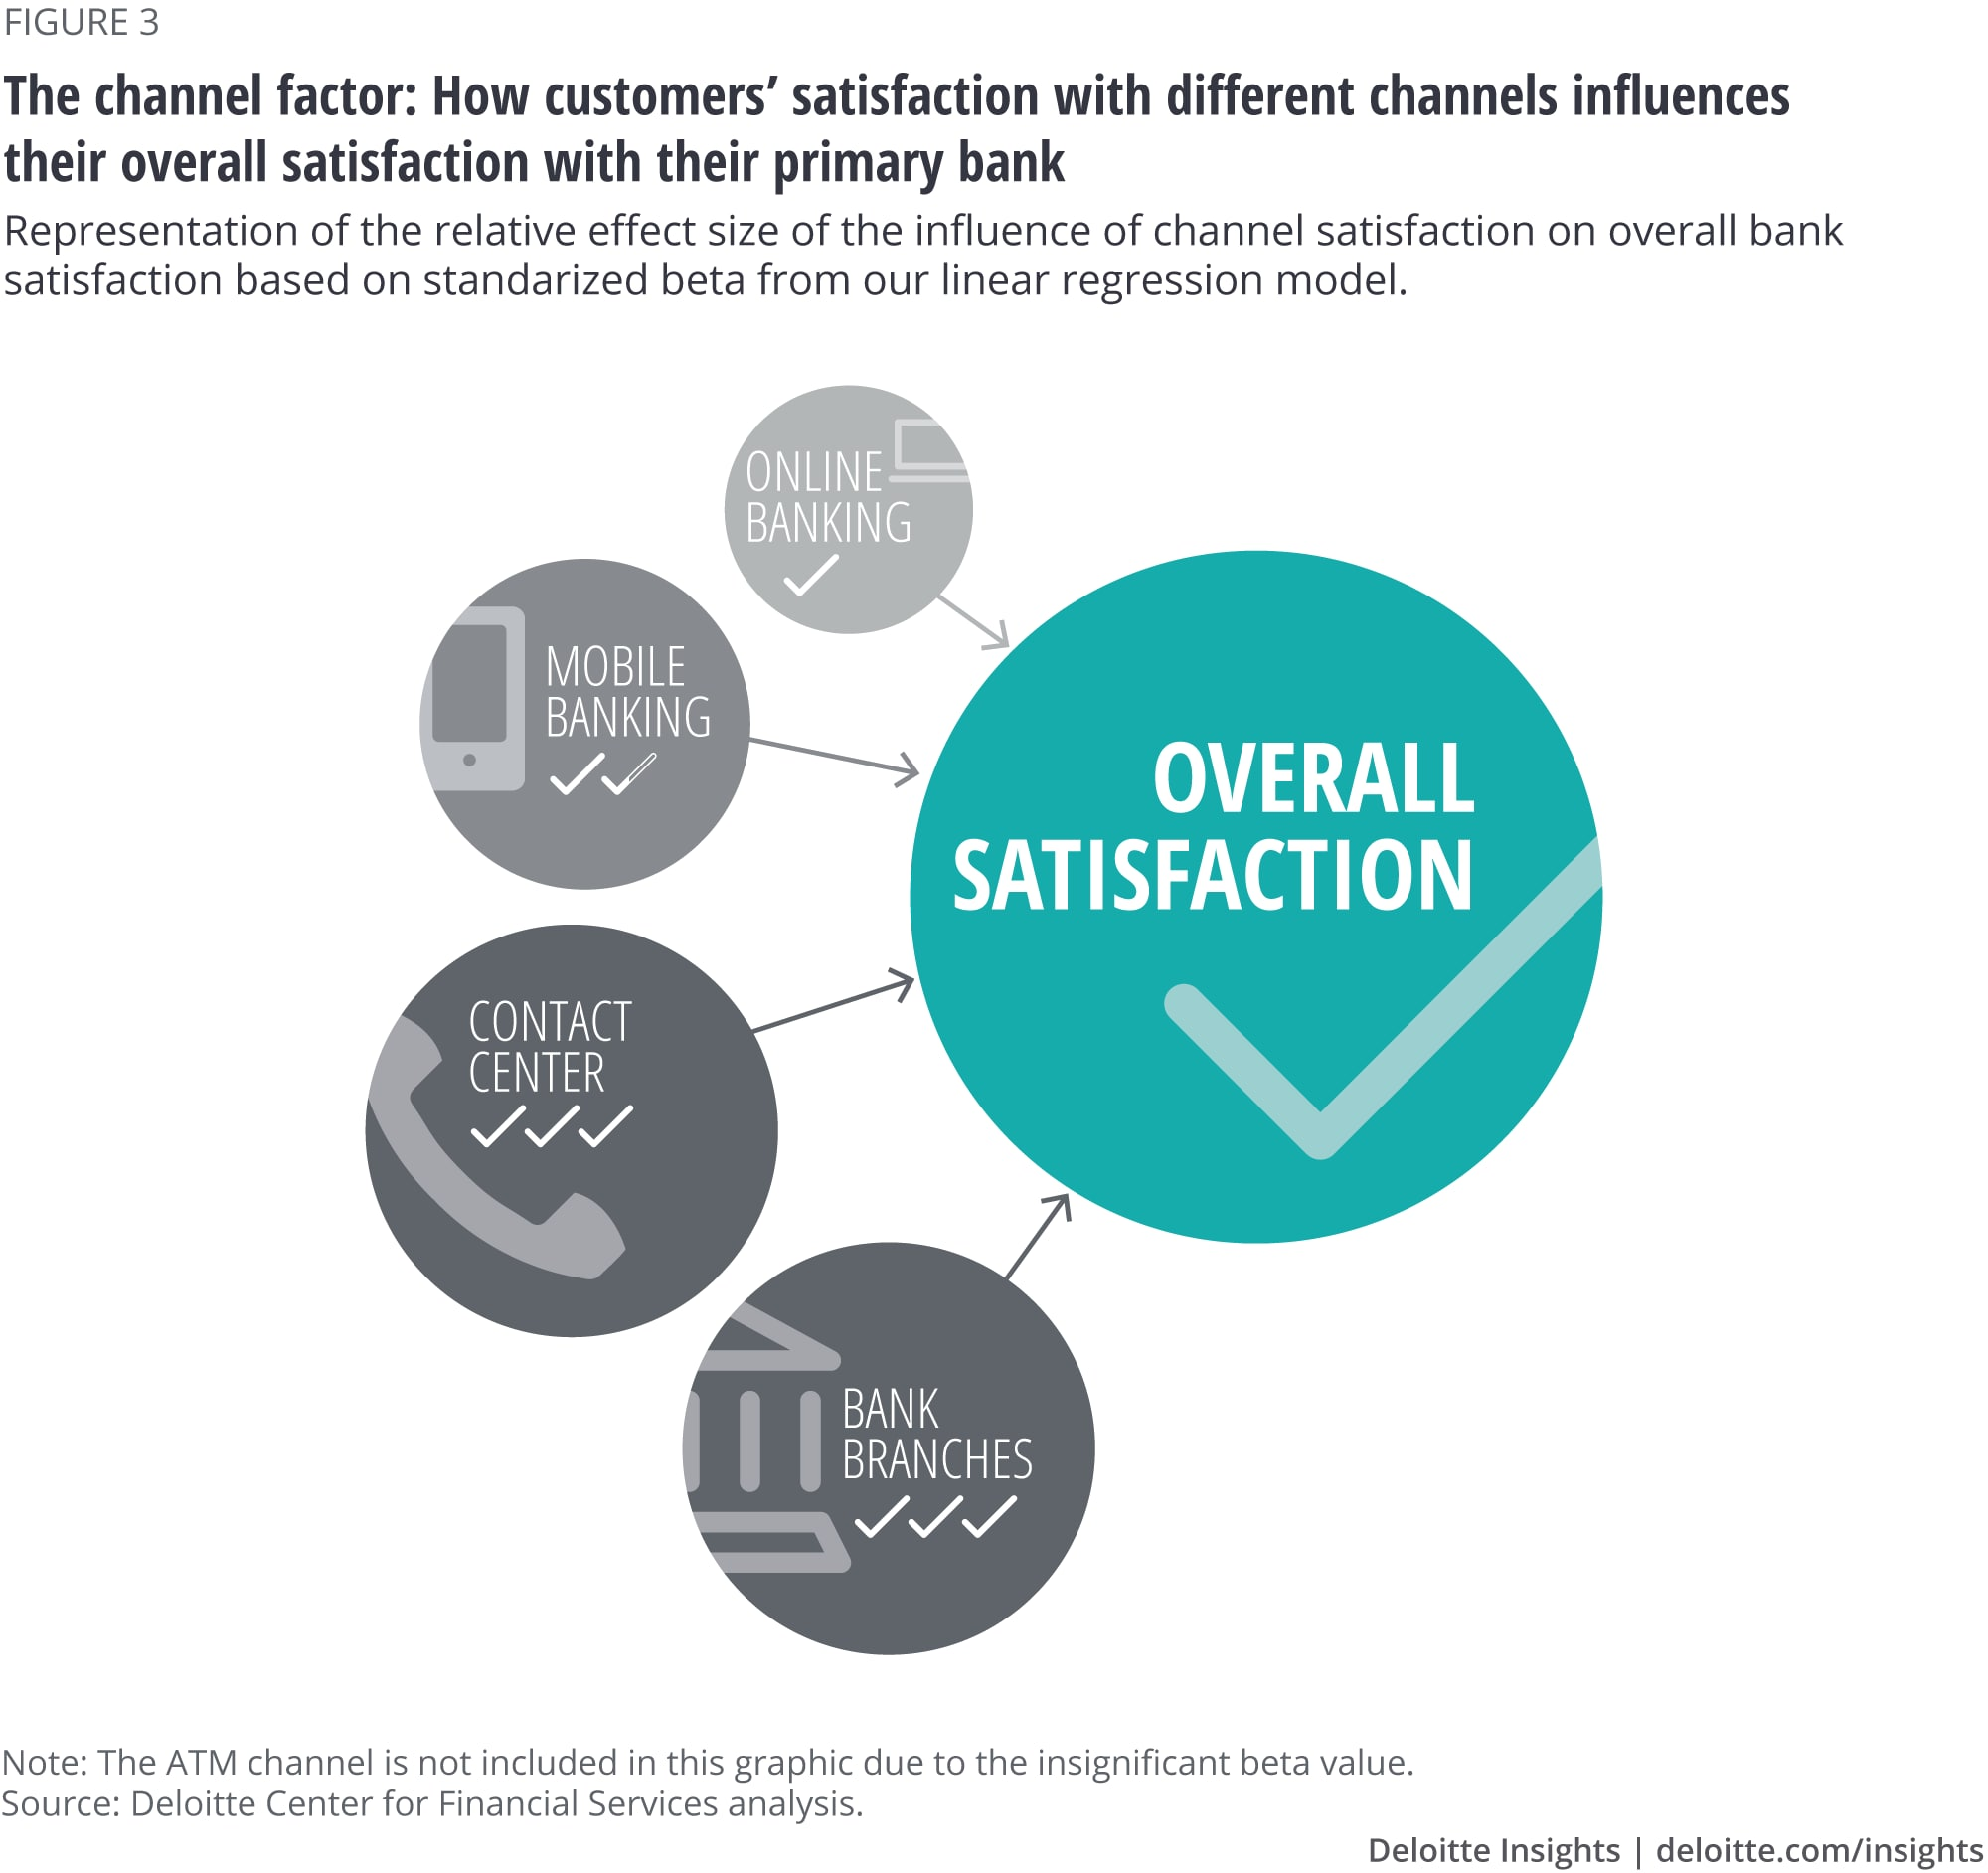 Transforming bank branches in the digital era | Deloitte Insights